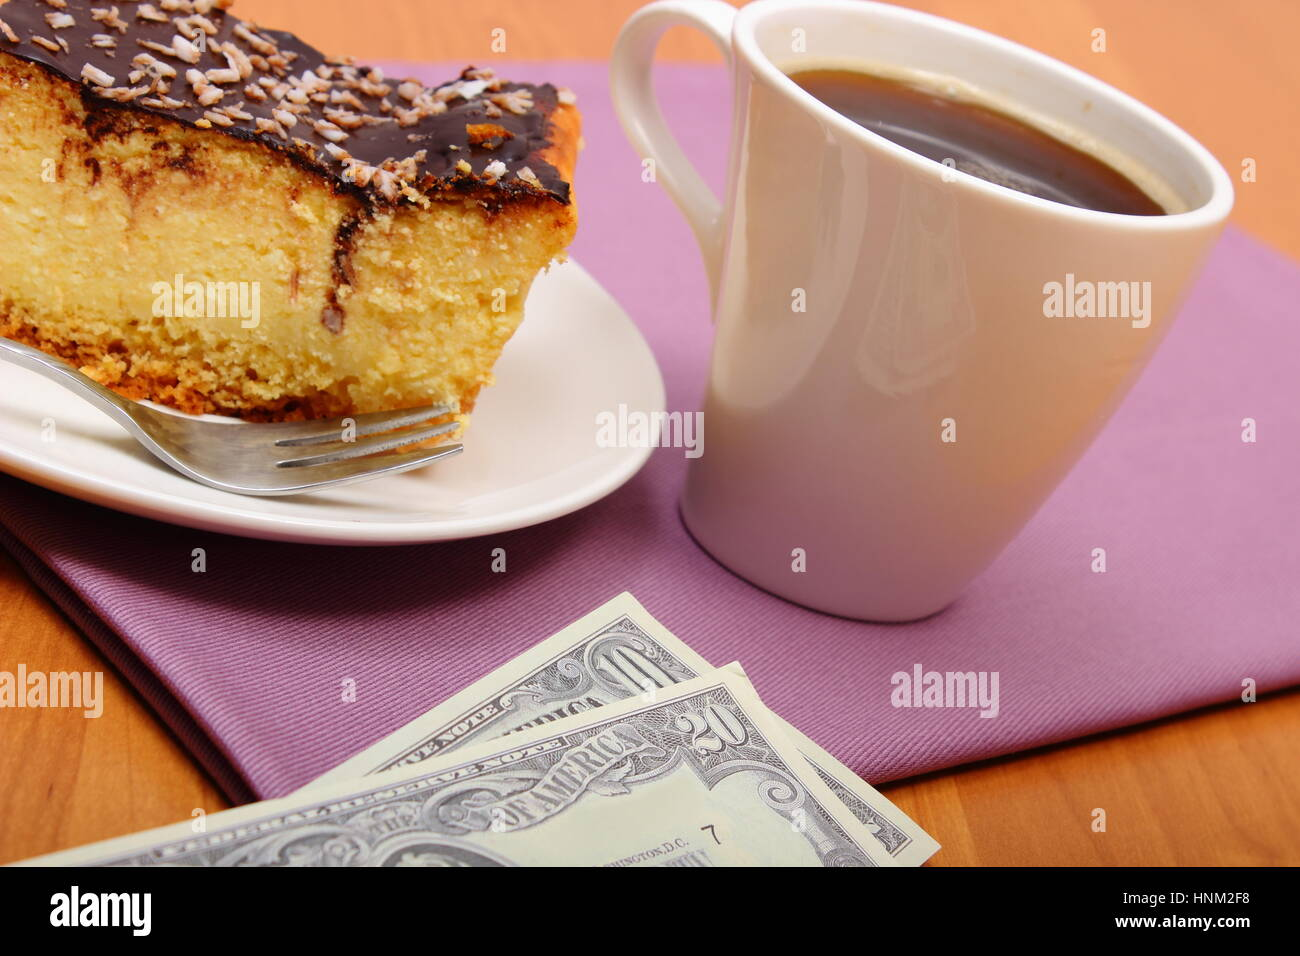 Paying for food in the cafe or restaurant, cheesecake and coffee, currencies dollar, finance concept - Stock Image